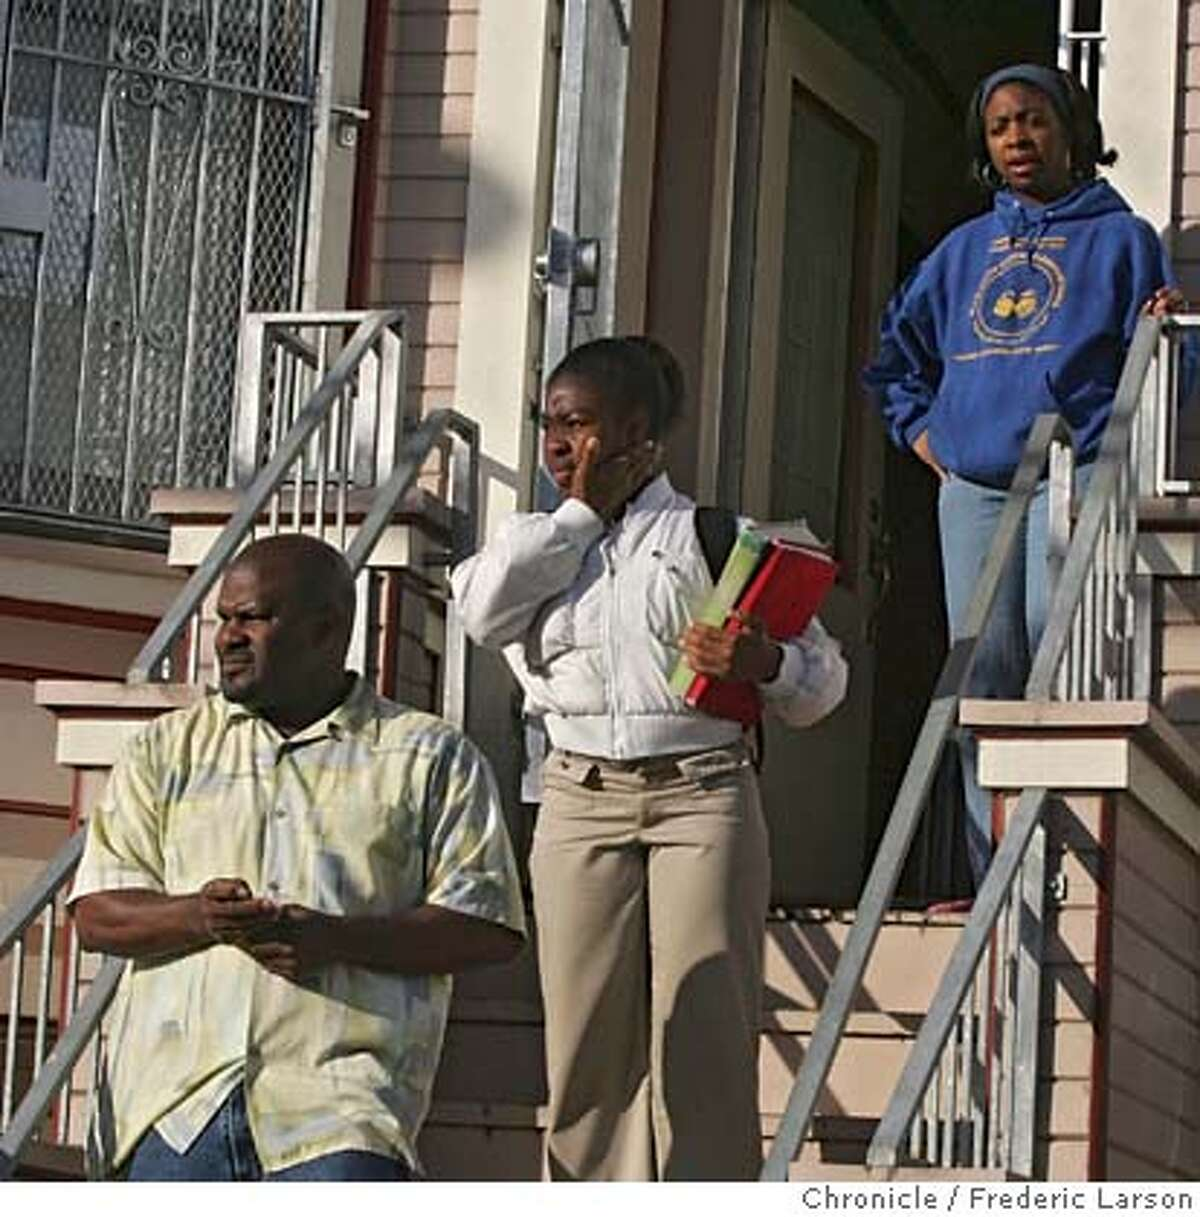 Omar Khallf takes his 12-year-old daughter Lailah Duke to Kipp Academy in the Bayview district, SF as Lailah mother (top) Carla Duke sees her off. Omar Khallf, a candidate for the school board who believes in neighborhood schools. 5/24/06 {Frederic Larson/The Chronicle} ** Omar Khallf, Lailah Duke,Carla Duke MANDATORY CREDIT FOR PHOTOGRAPHER AND SAN FRANCISCO CHRONICLE/ -MAGS OUT